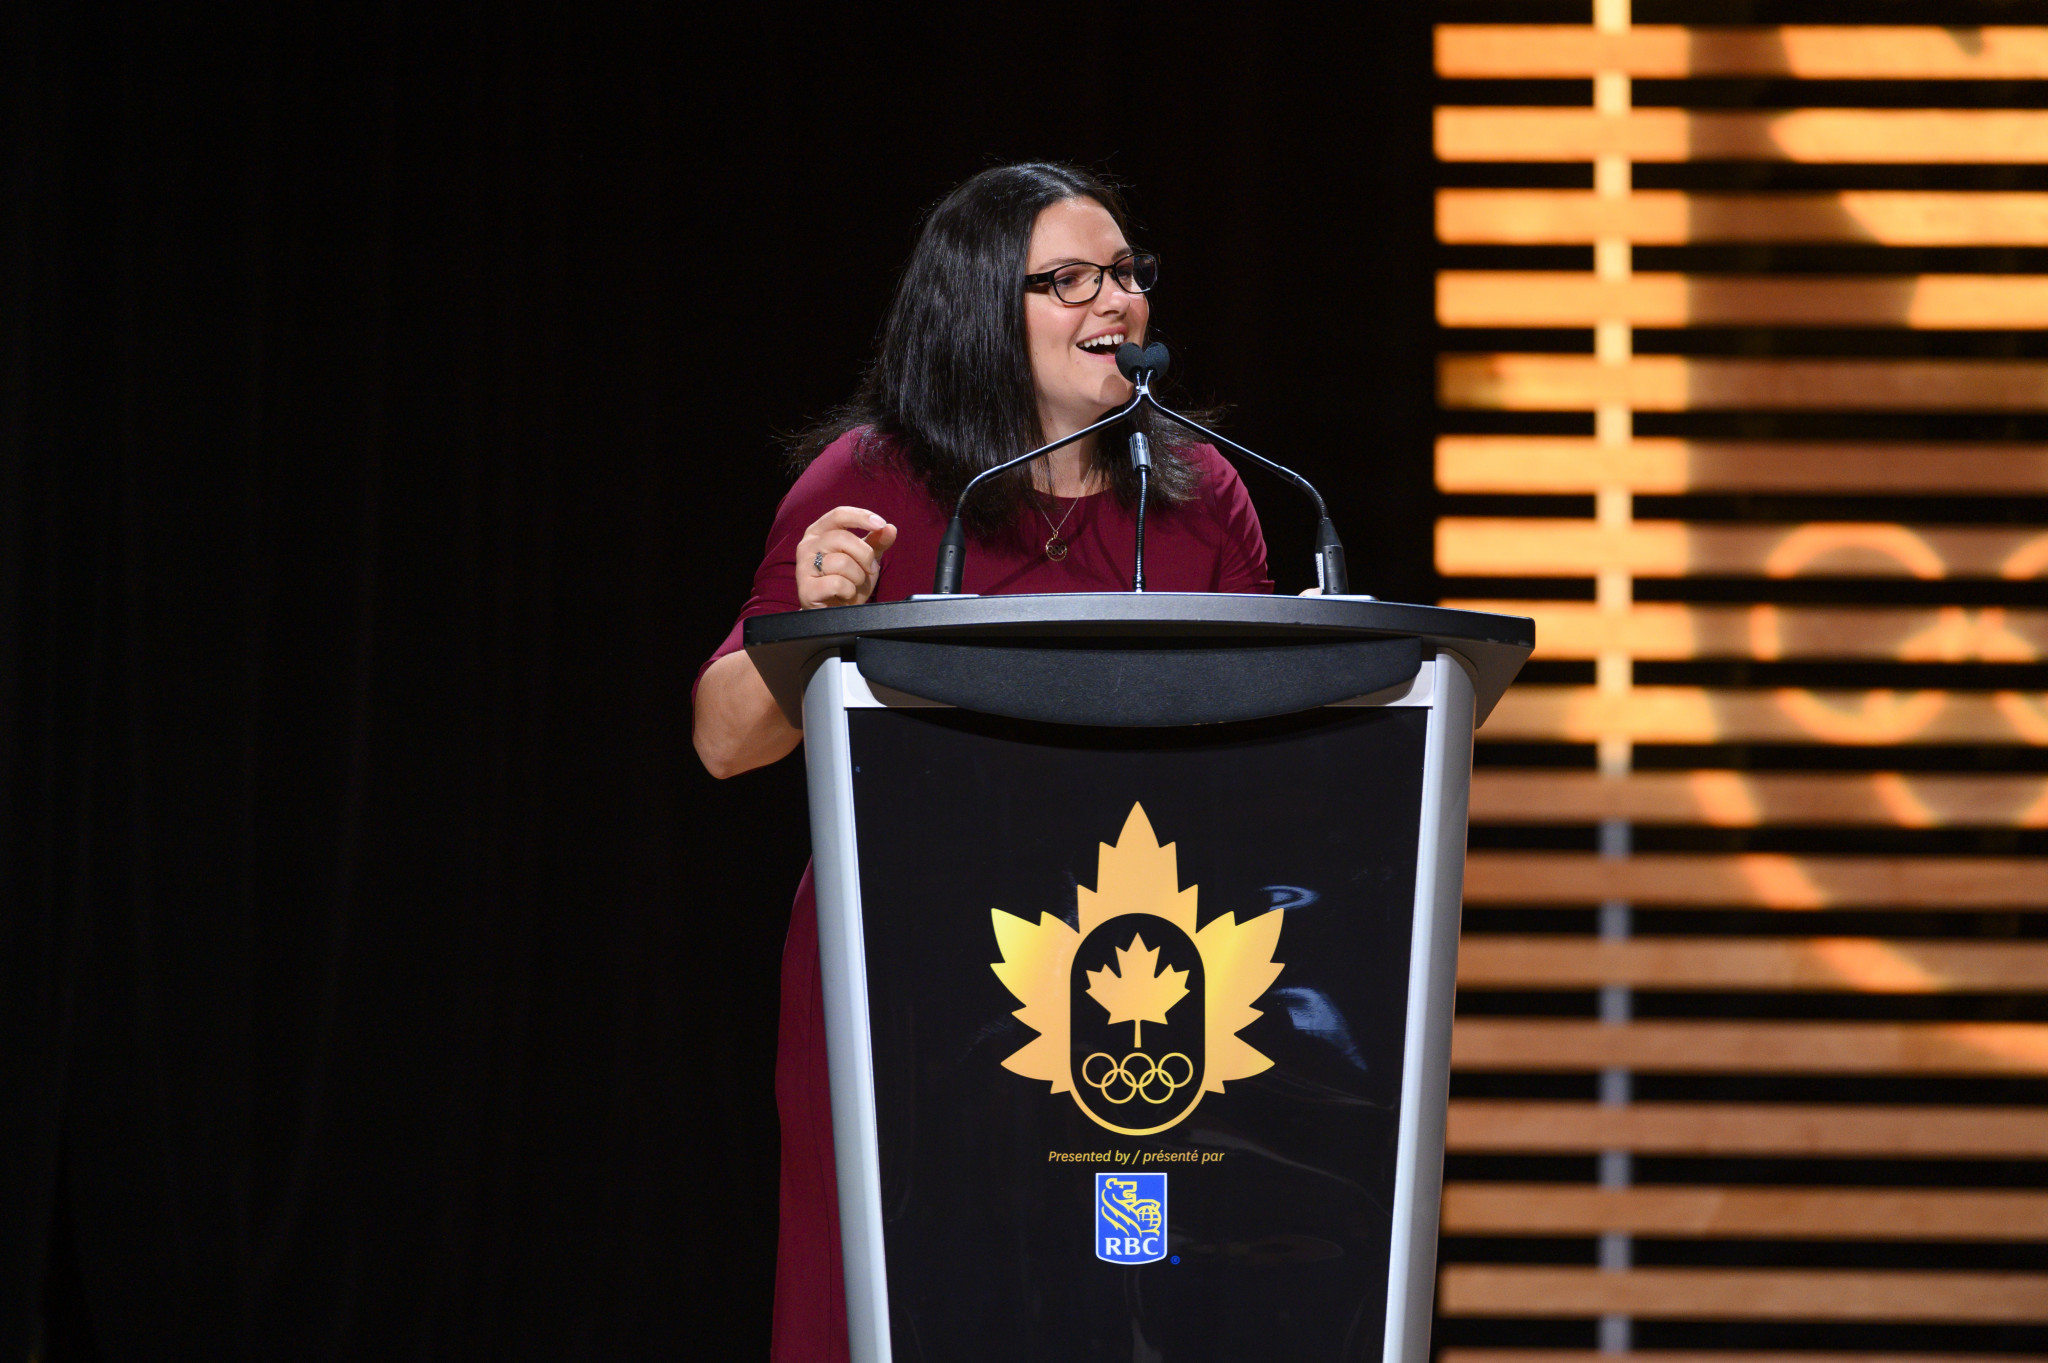 Christine Girard: Weightlifting has a clear choice in this high-stakes IWF election - embrace positive culture change or face years on the sidelines